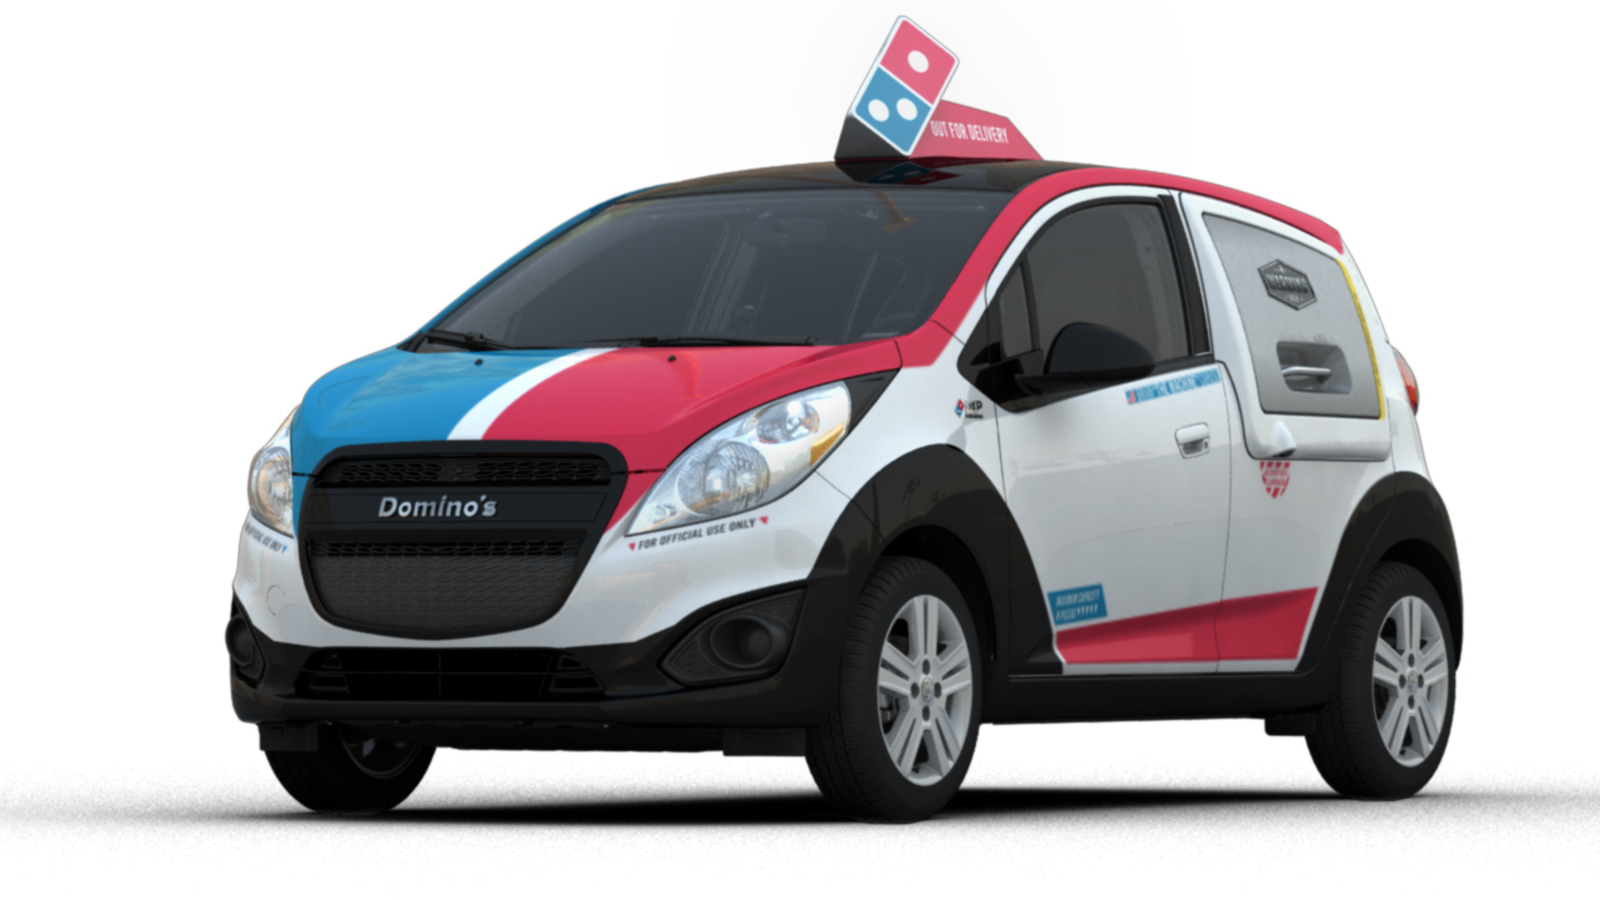 'Soda bombs' and 'pizza security': The lessons of making a car for Domino's